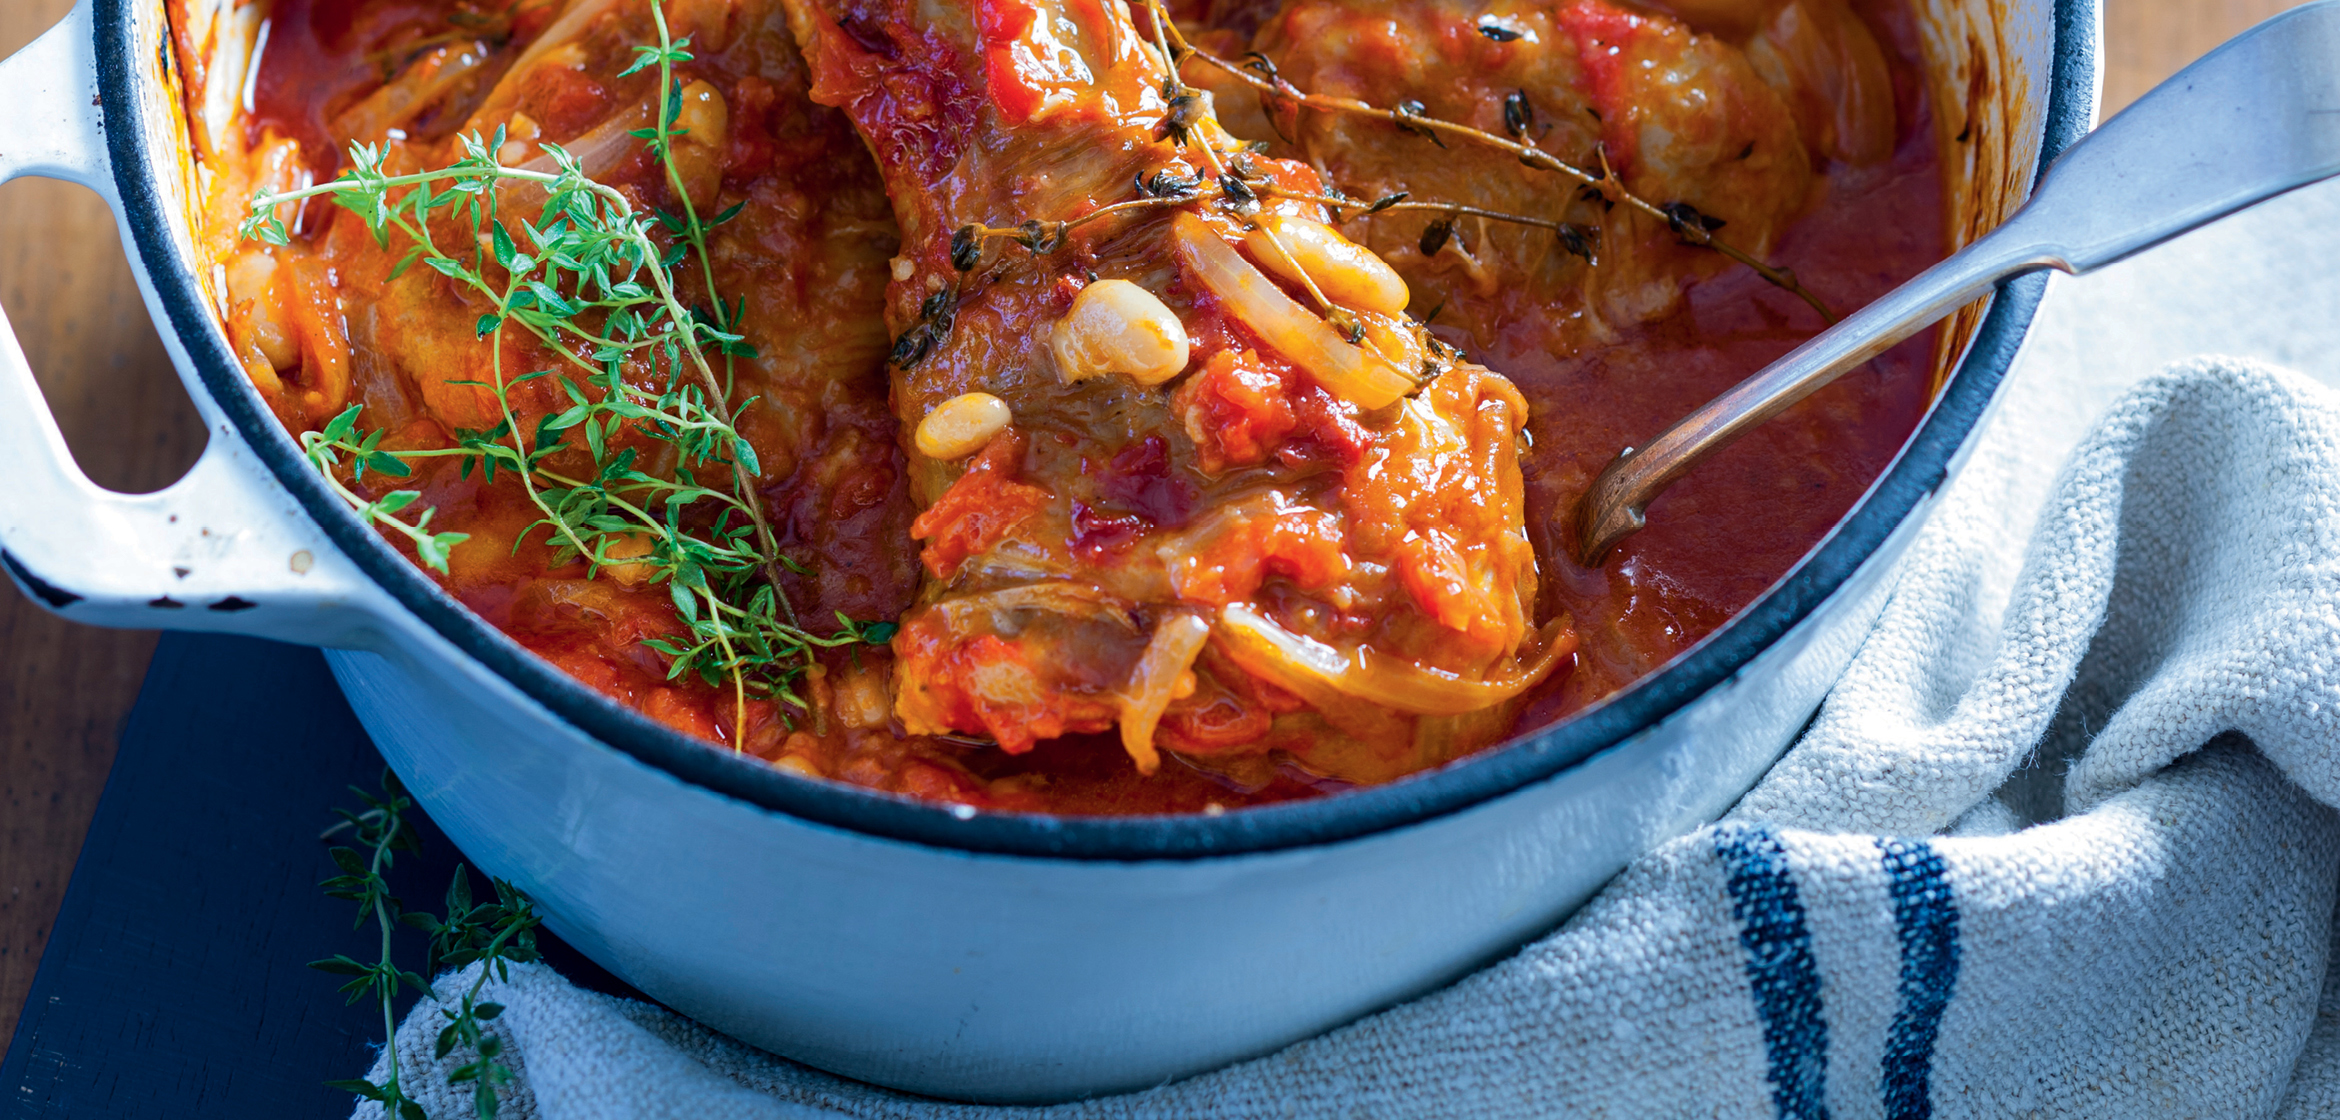 SLOW COOKED TURKEY SHANKS CASSEROLE